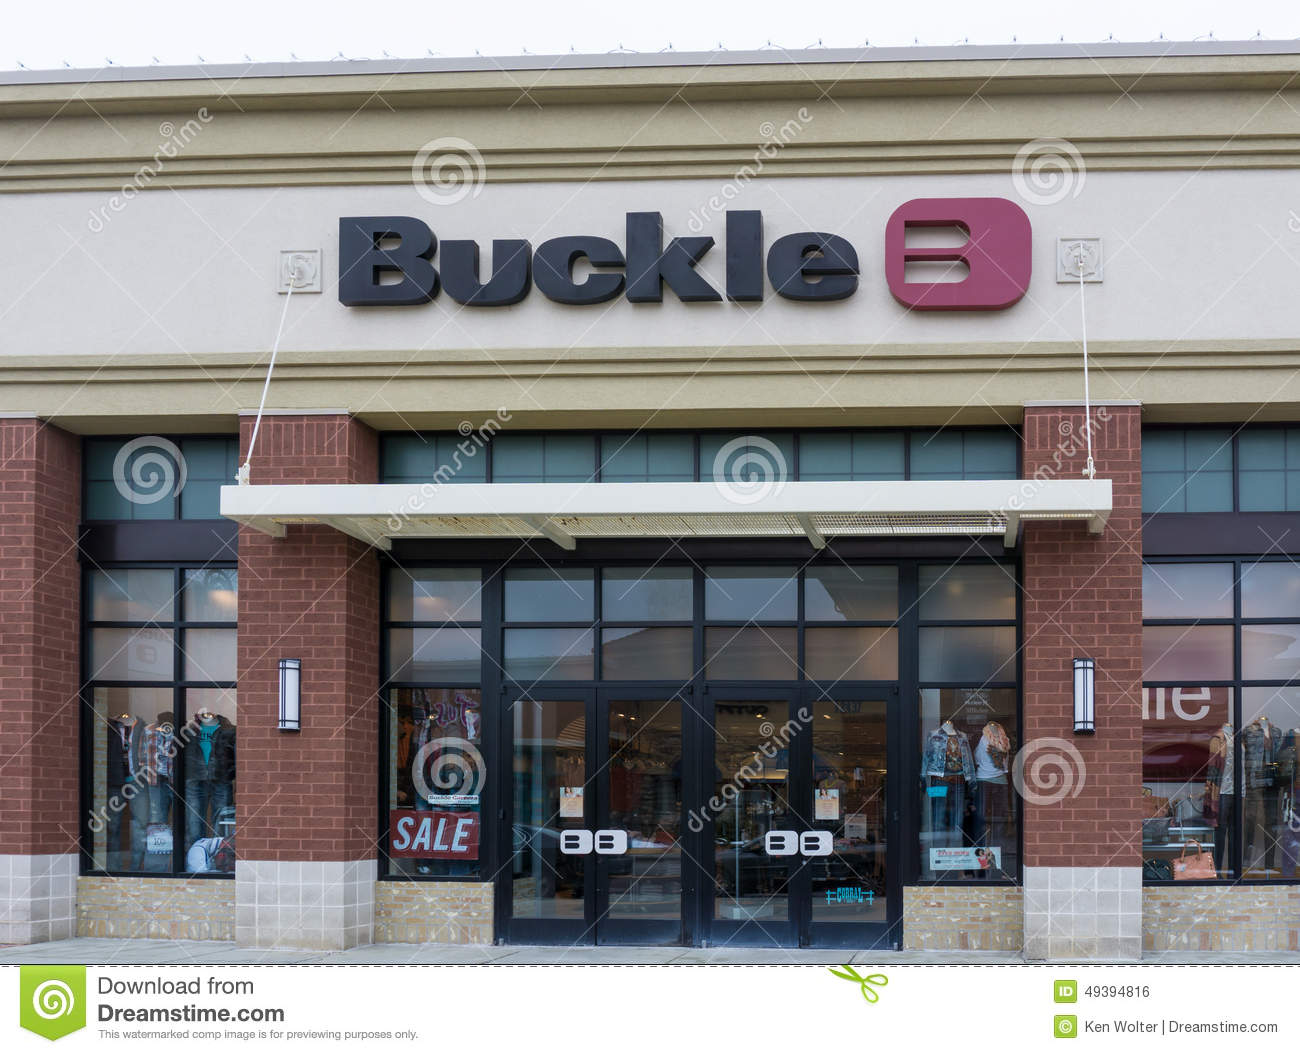 Buckle clothing store